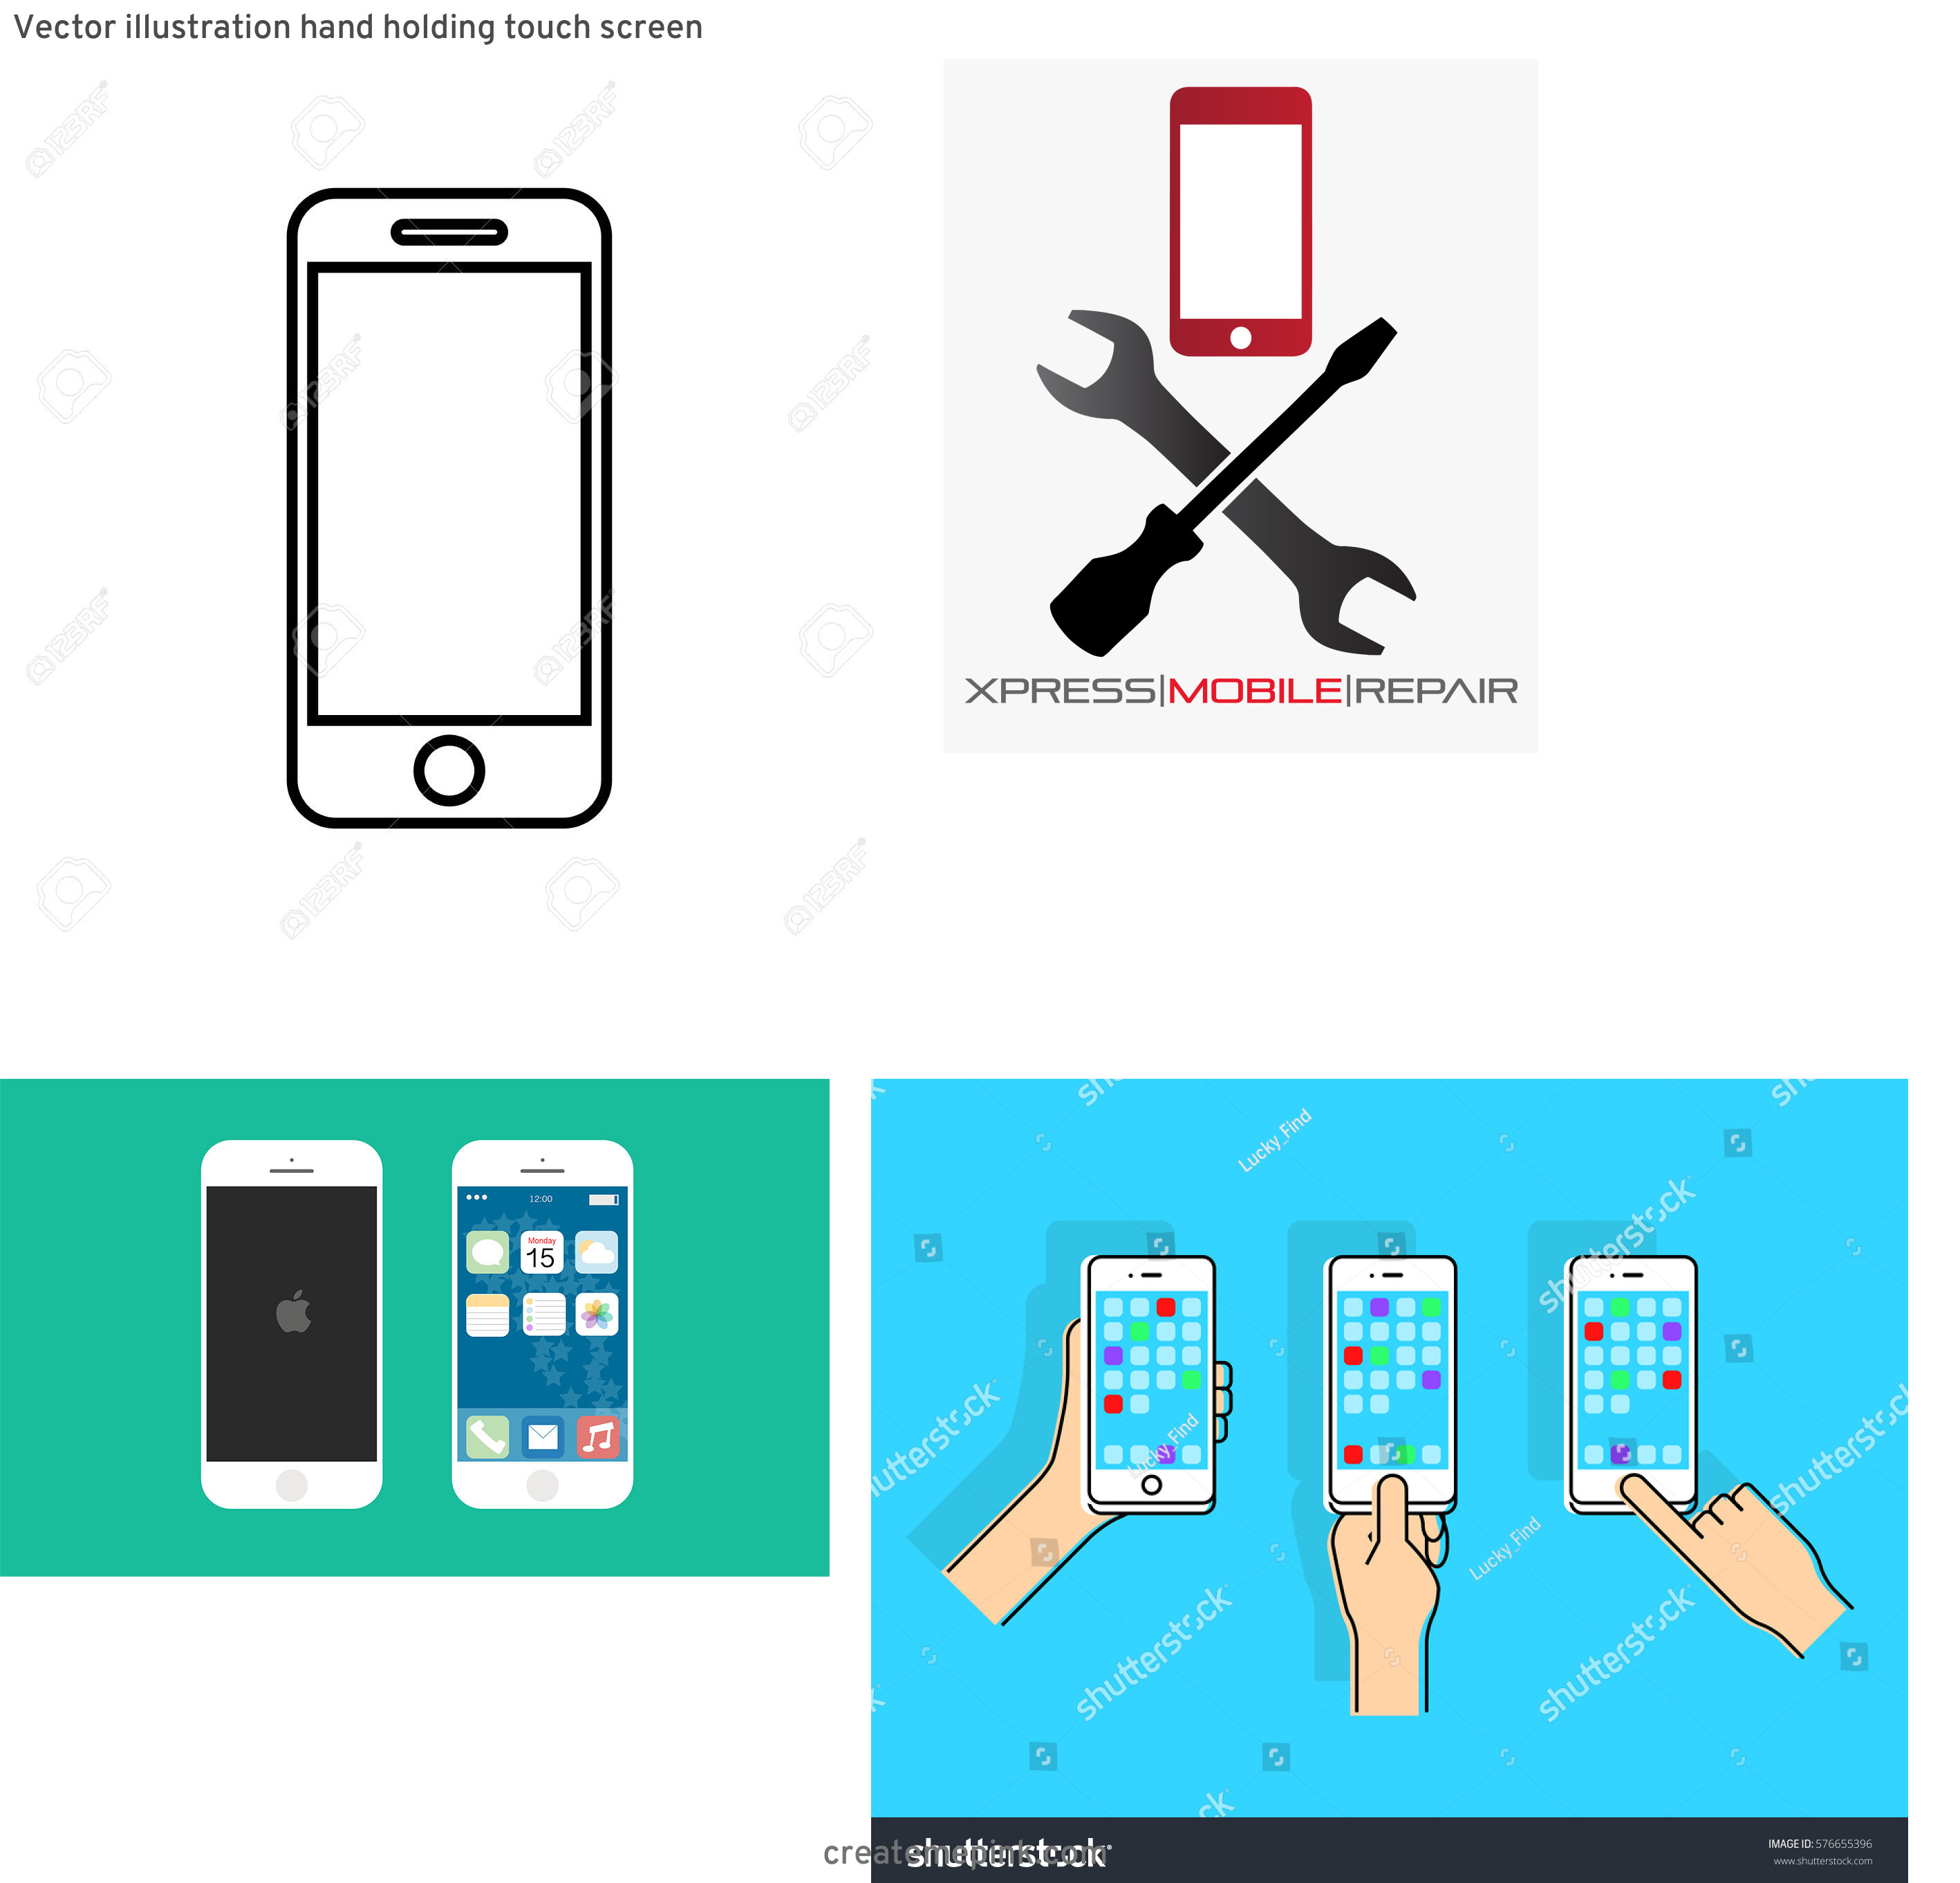 U.S. Cellular Phone Vector: Vector Illustration Hand Holding Touch Screen